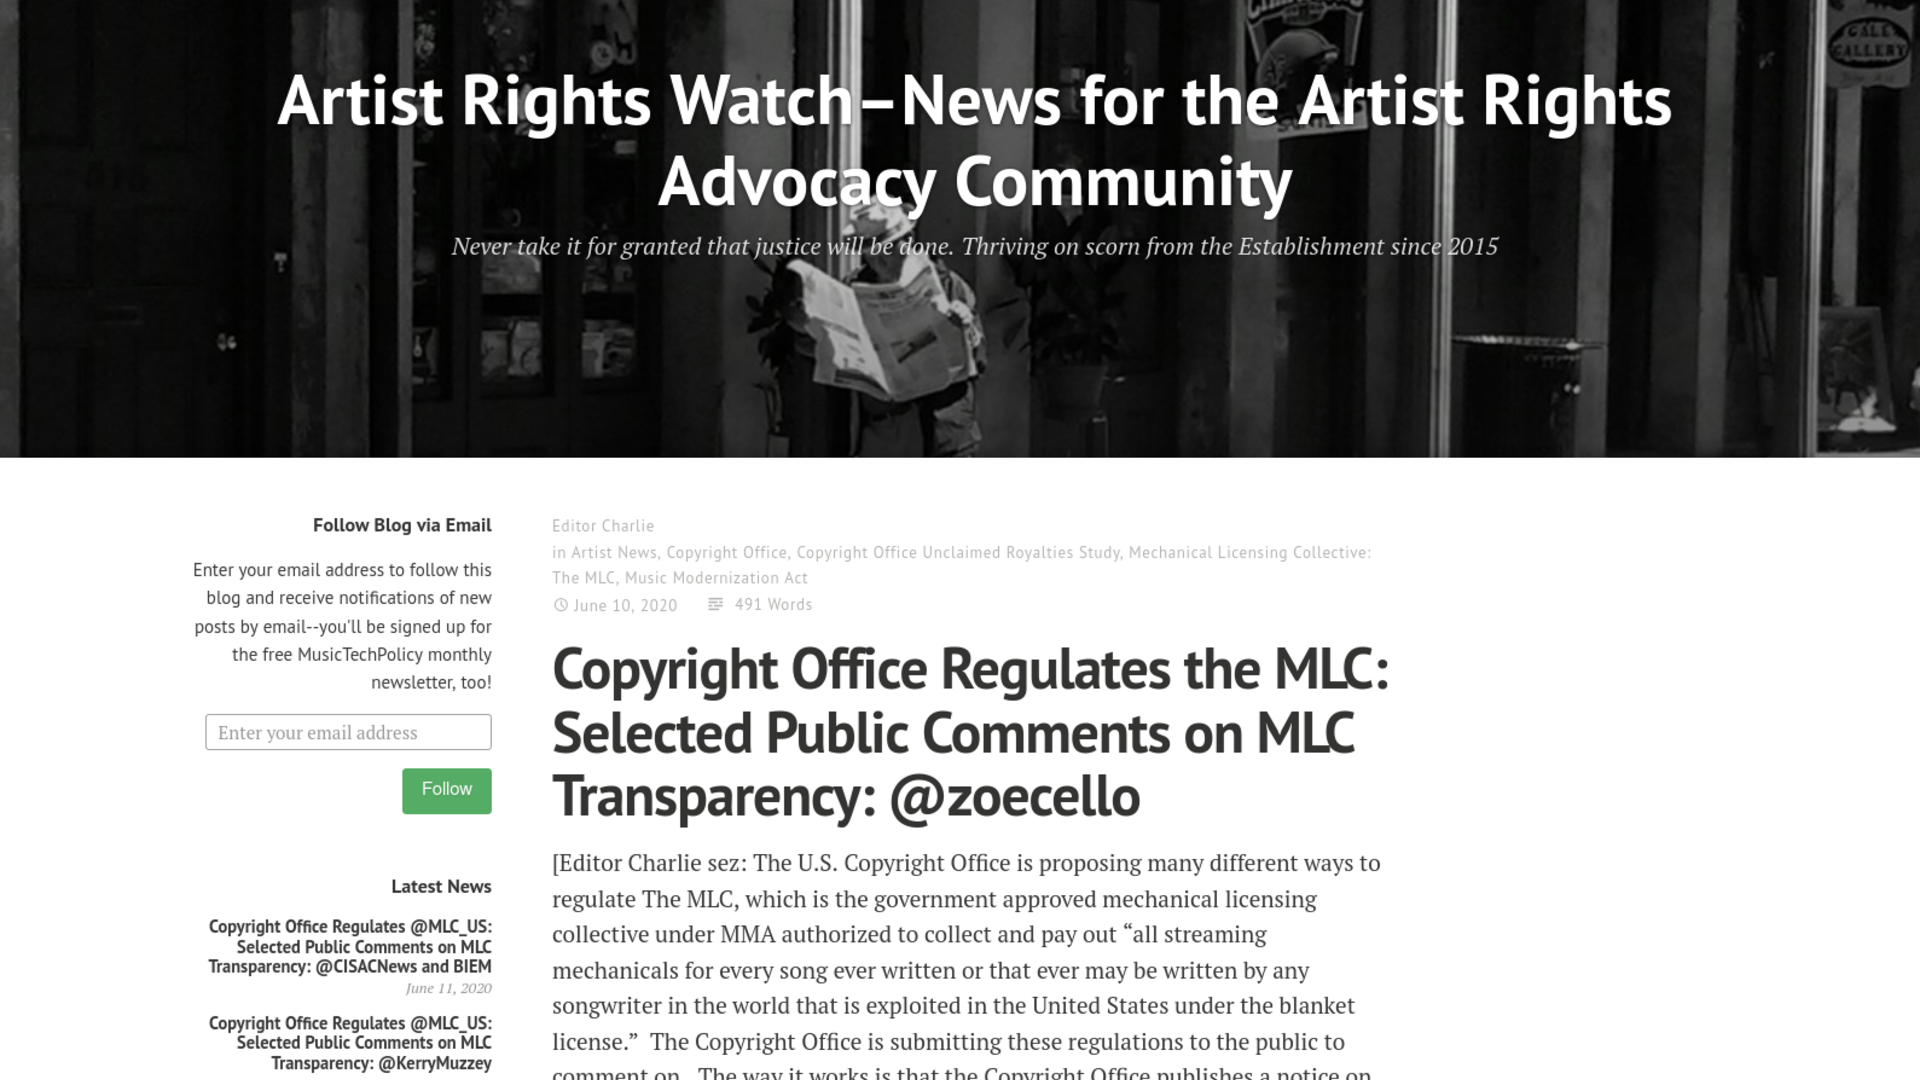 Fairness Rocks News Copyright Office Regulates the MLC: Selected Public Comments on MLC Transparency: @zoecello